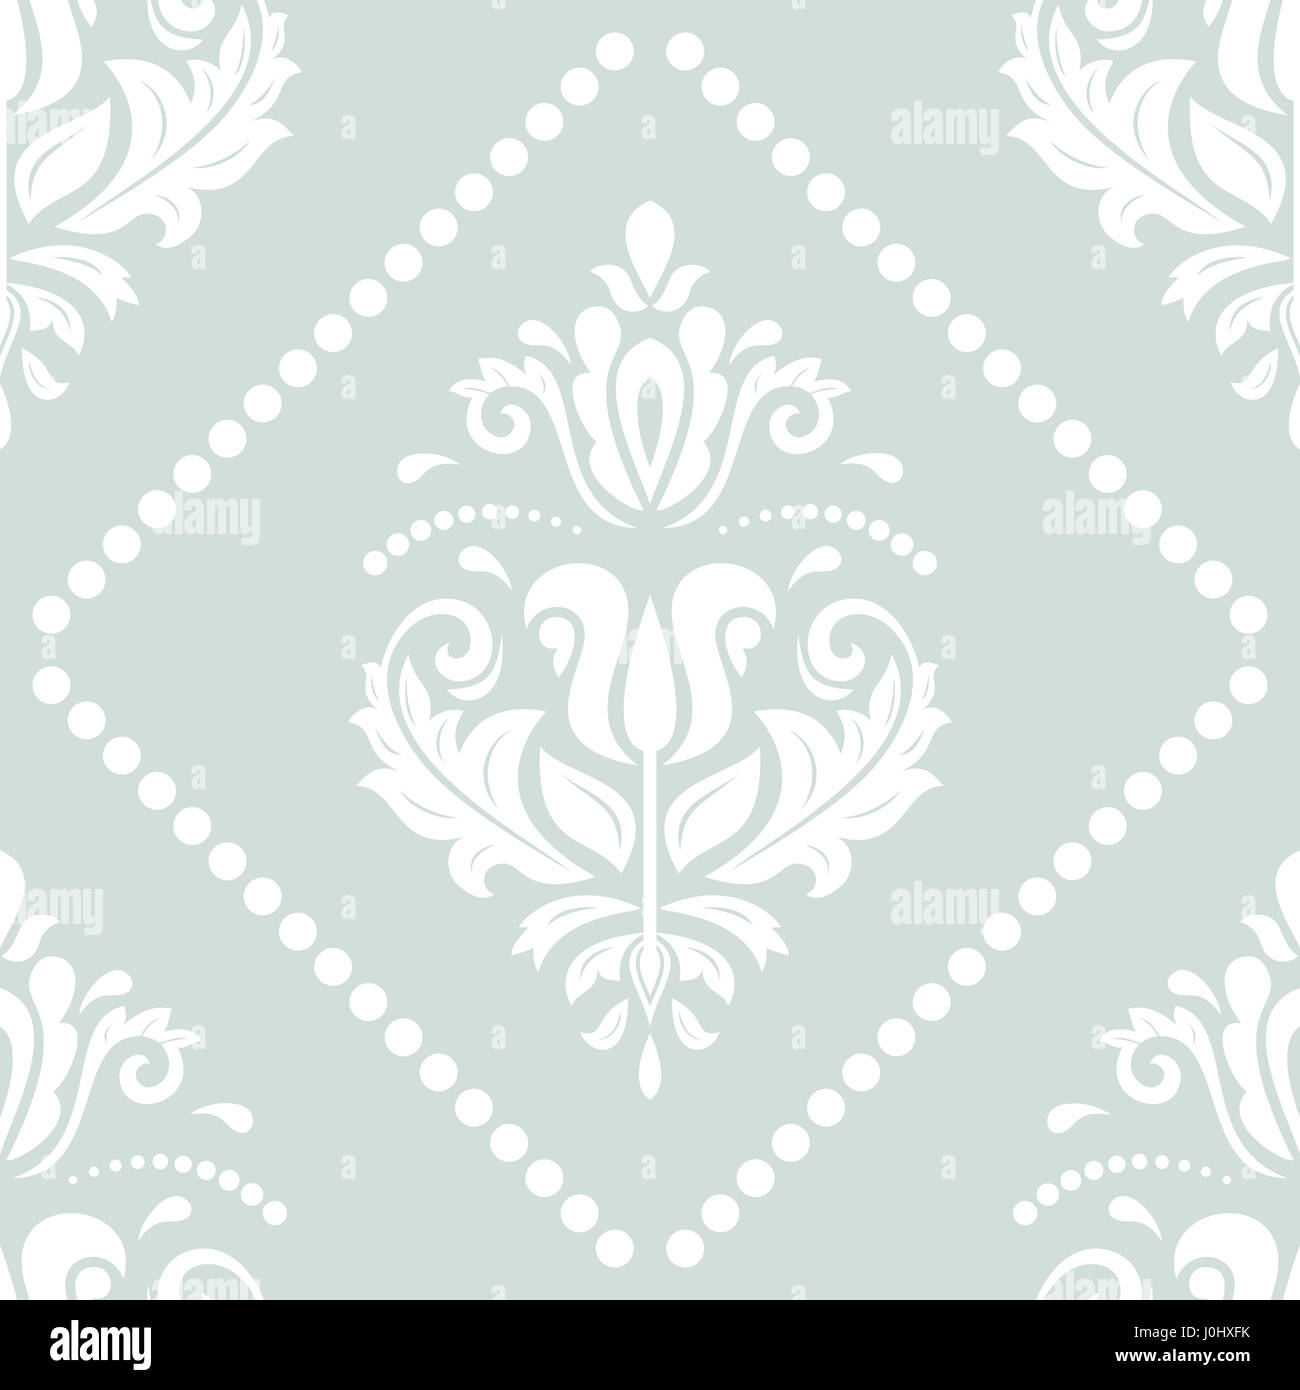 Damask Classic Light Blue And White Pattern Seamless Abstract Background With Repeating Elements